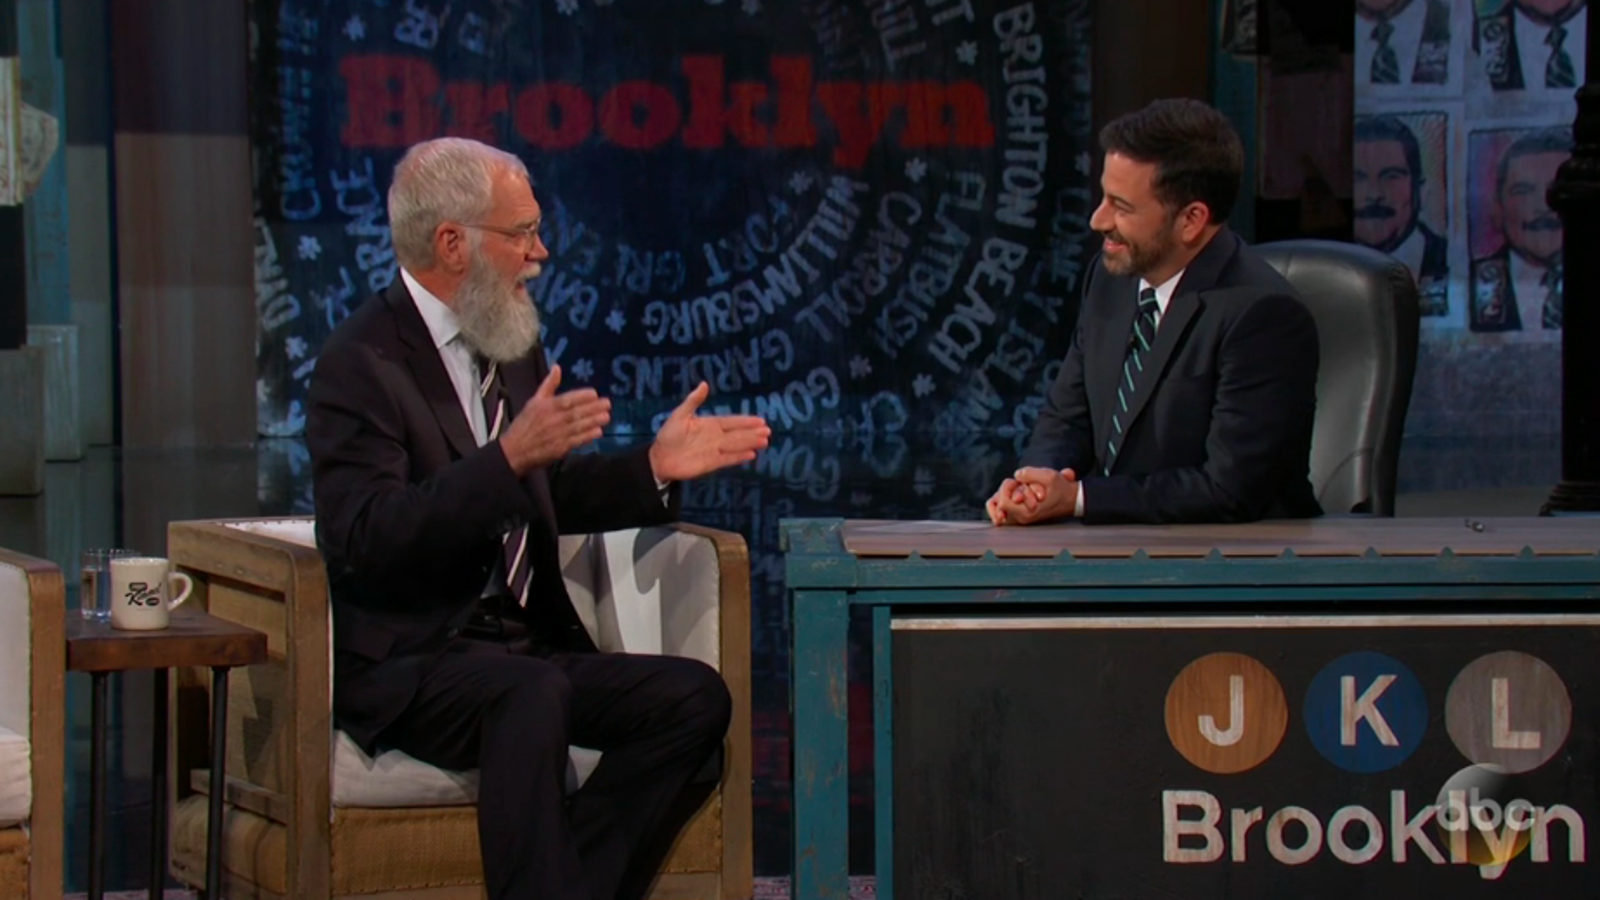 Cantankerous prospector David Letterman emerges on Jimmy Kimmel Live ...